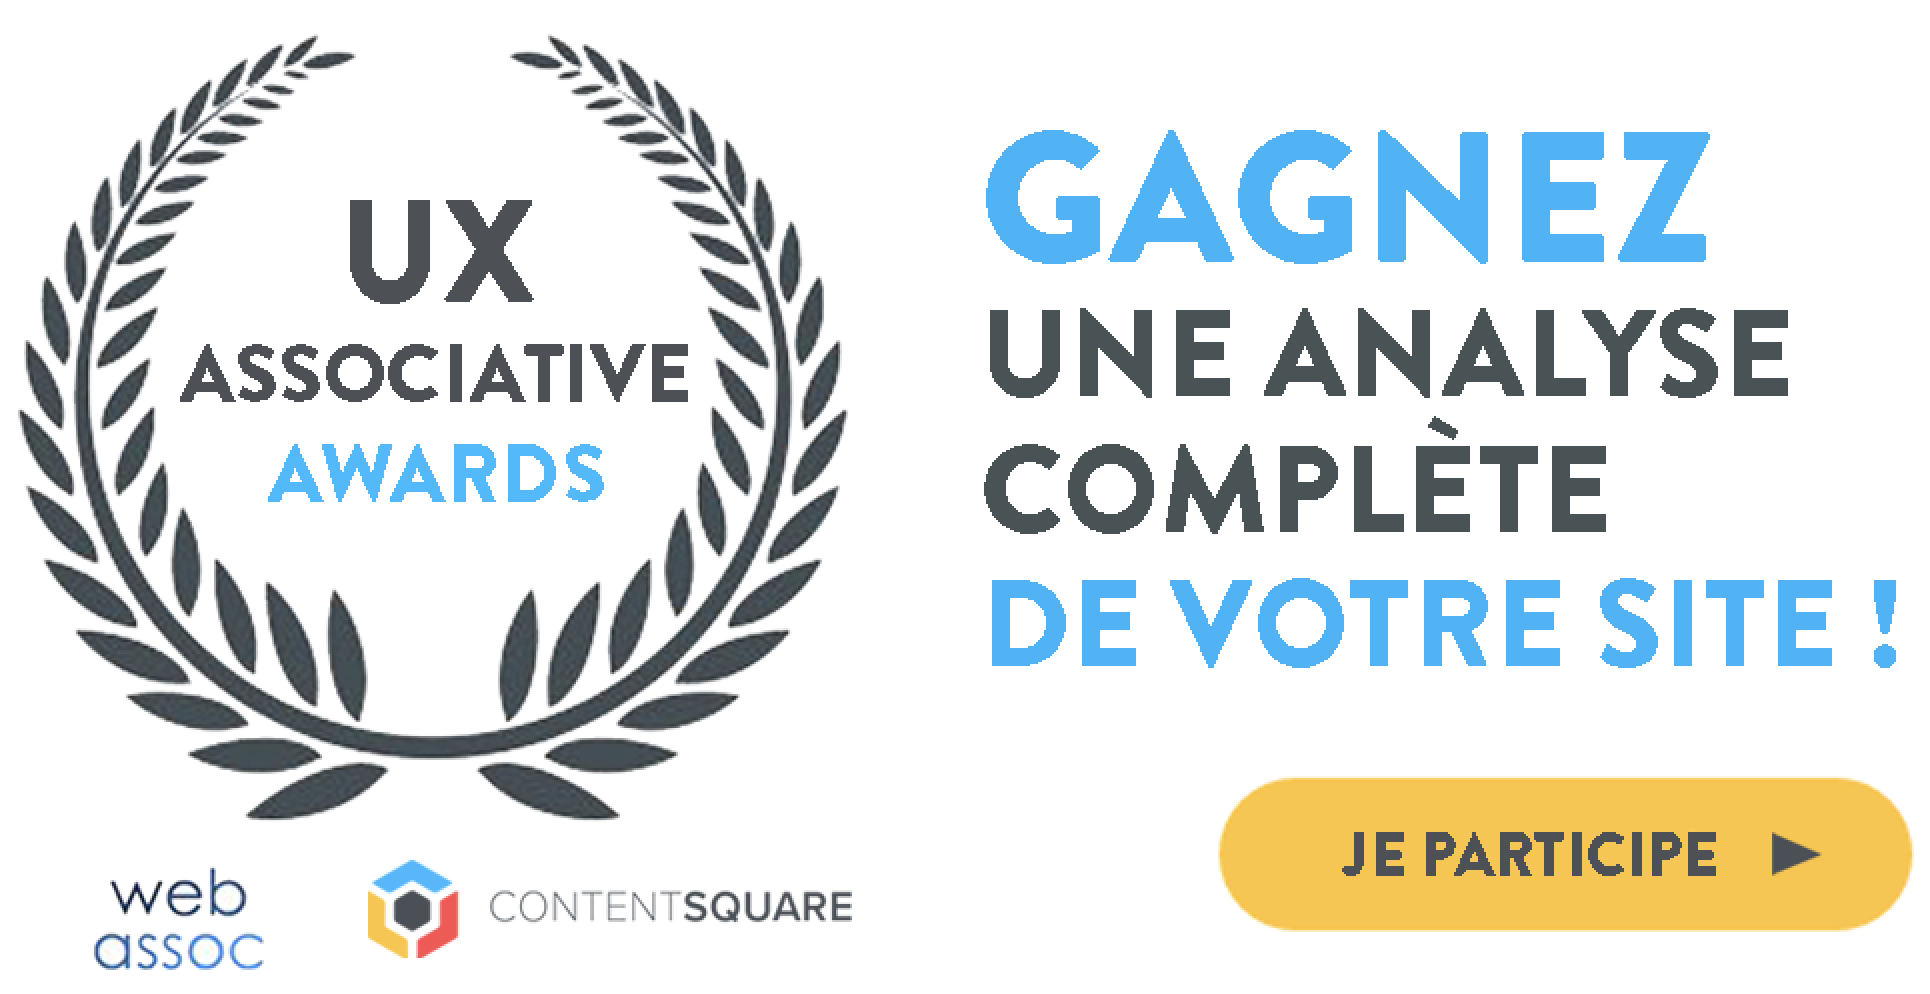 UX Associative Awards 2018